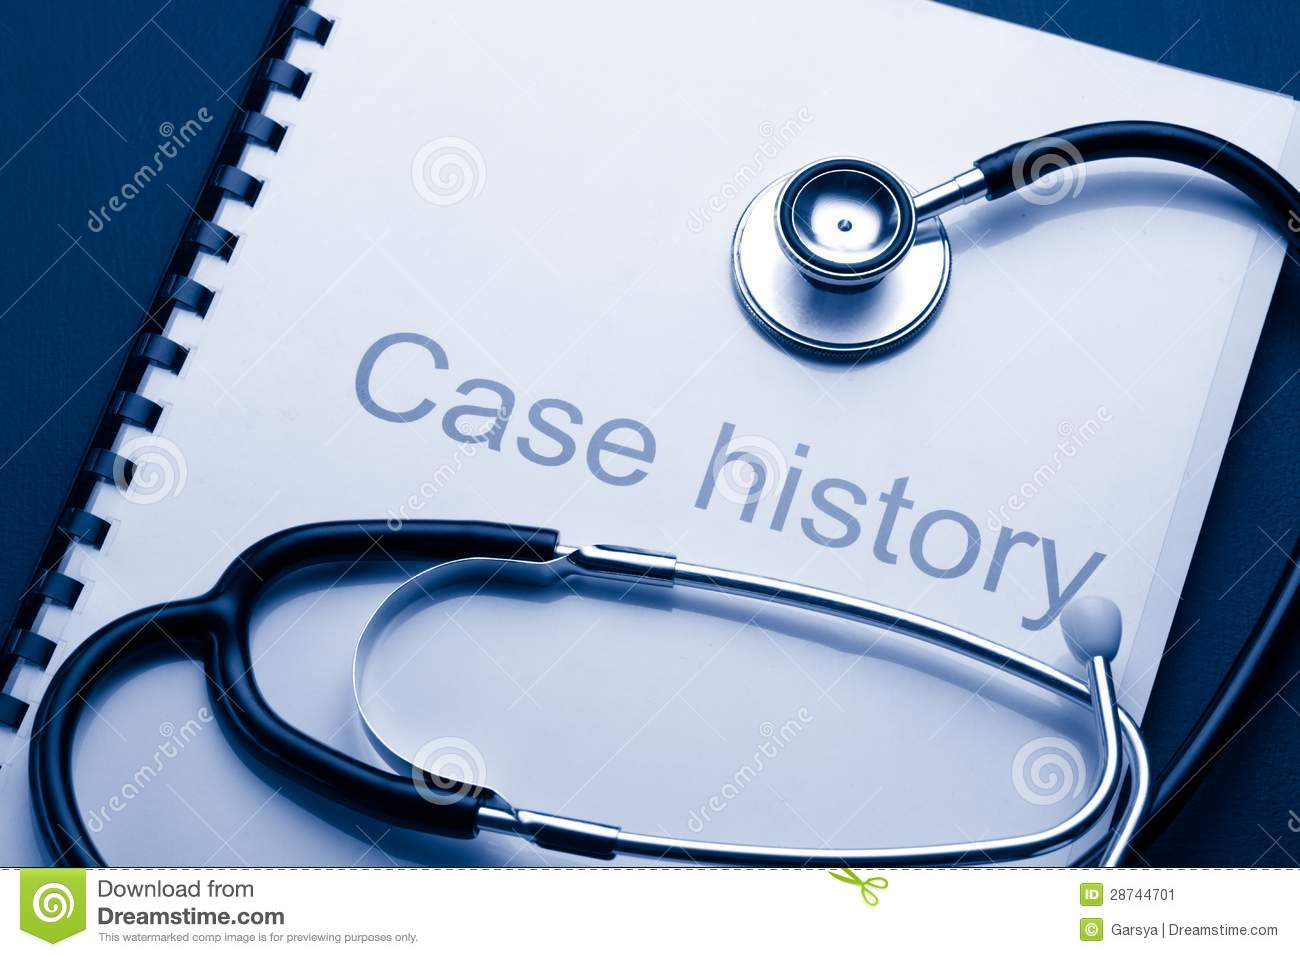 Case history clipart picture freeuse download Case History Stock Image - Image: 28744701 picture freeuse download